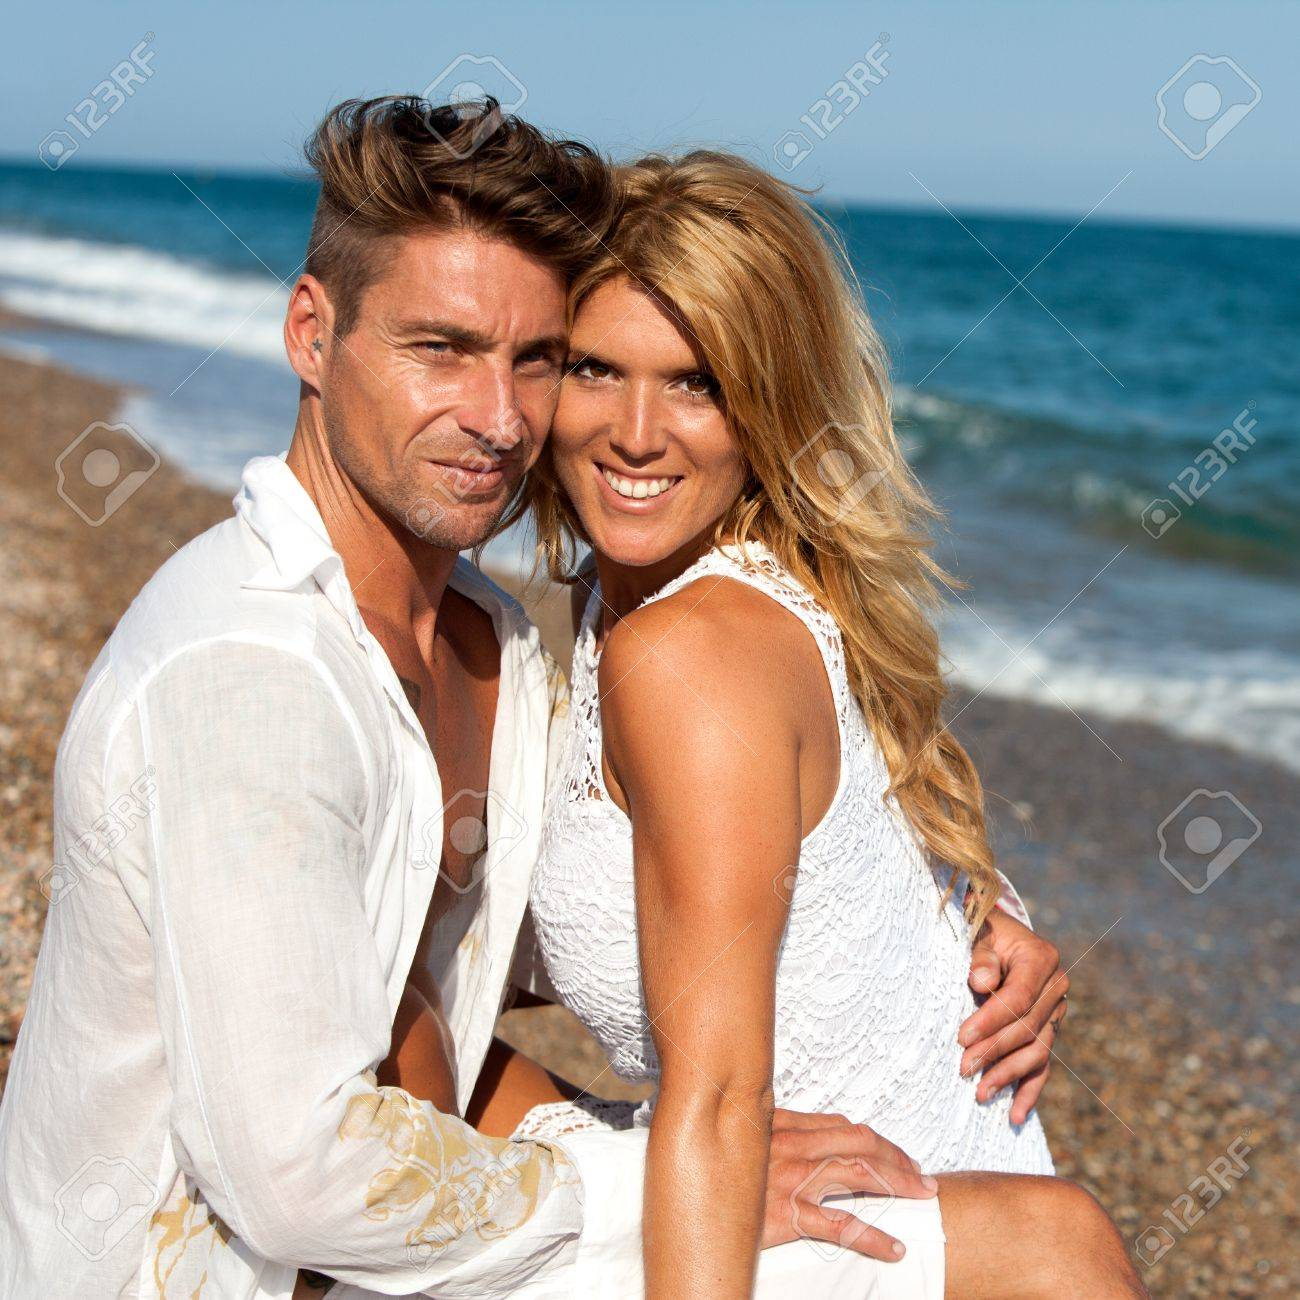 Close up portrait of handsome couple with heads together on beach Stock Photo - 15388561